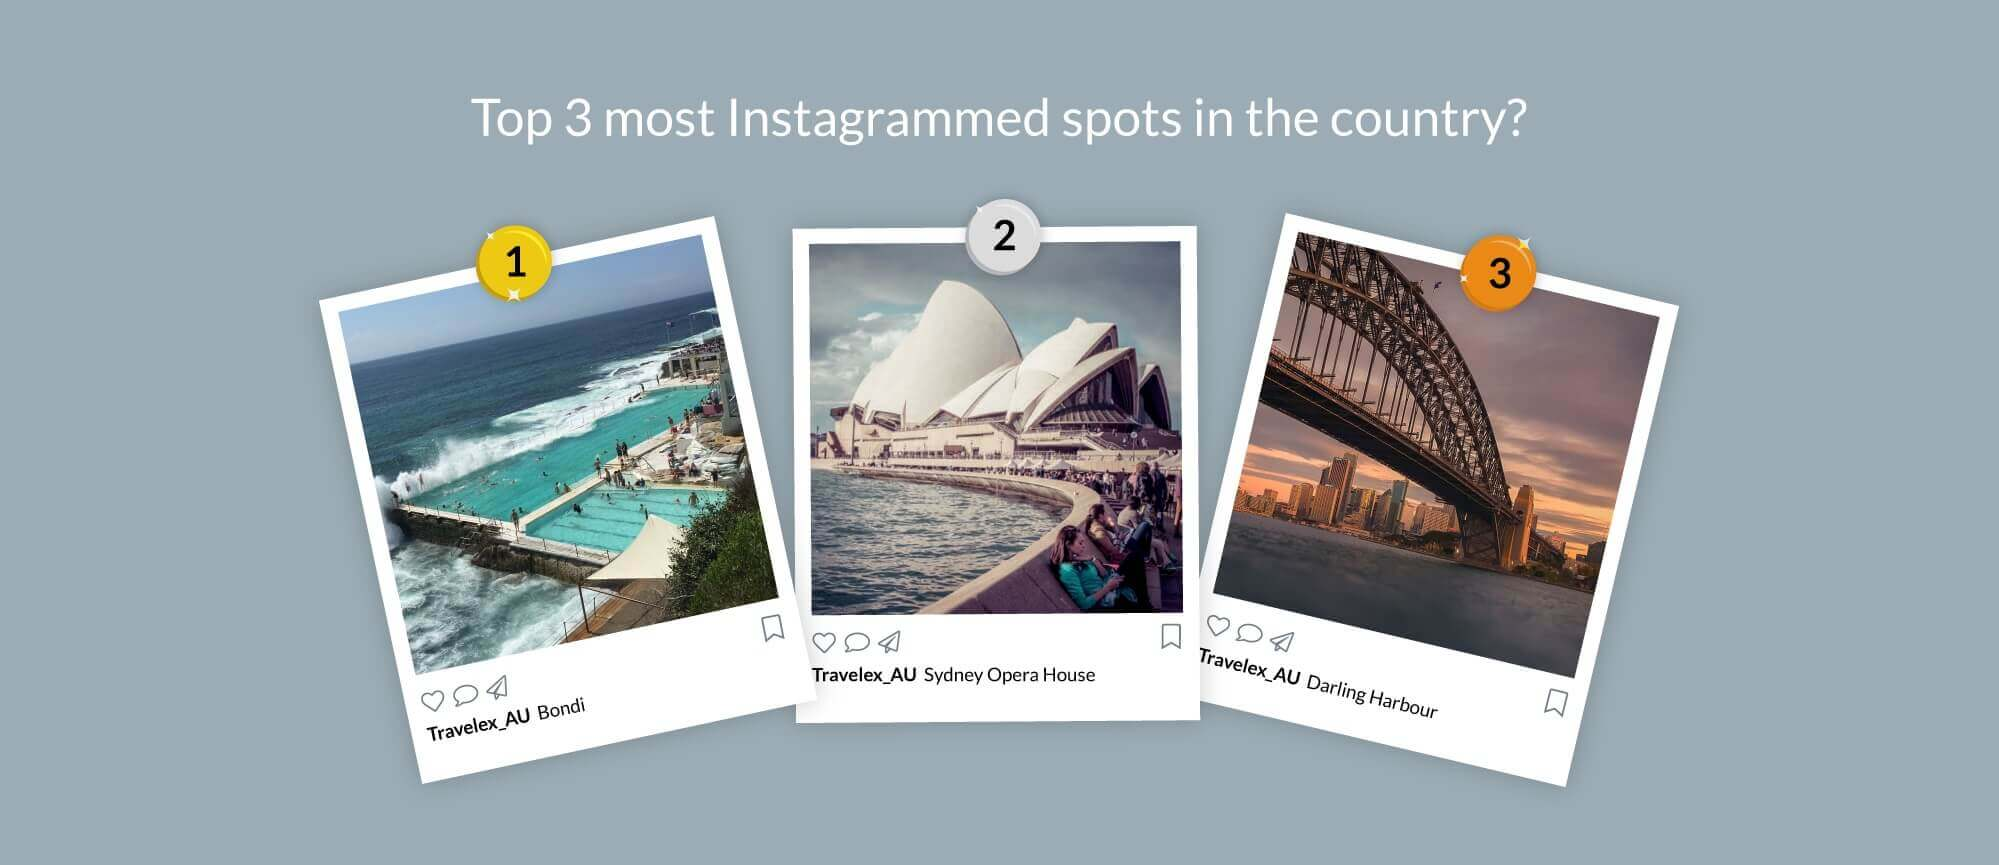 Images of the top 3 instagrammed spots in Australia, bondi beach, sydney opera house, sydney harbour bridge